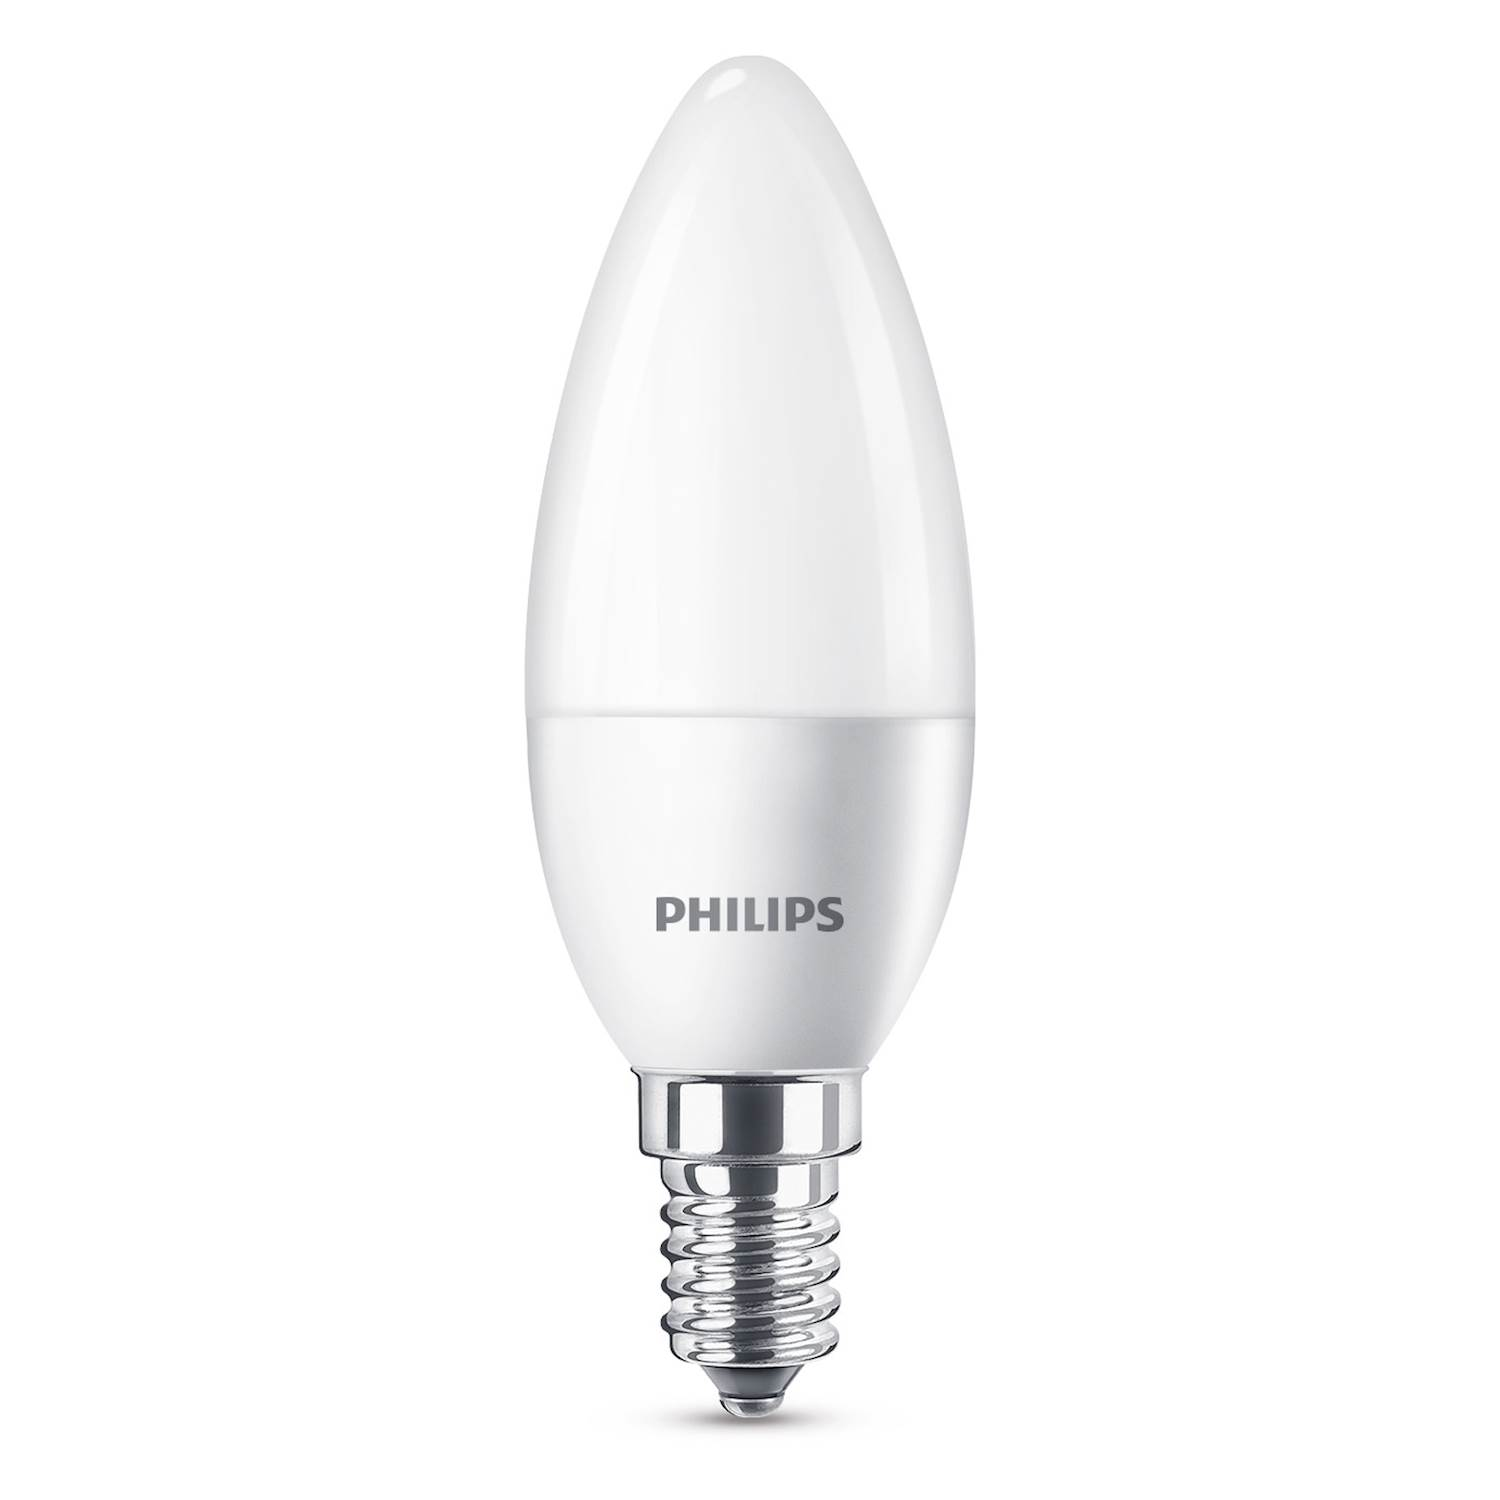 Philips LED KRON 5,5 E14 VV FR ND